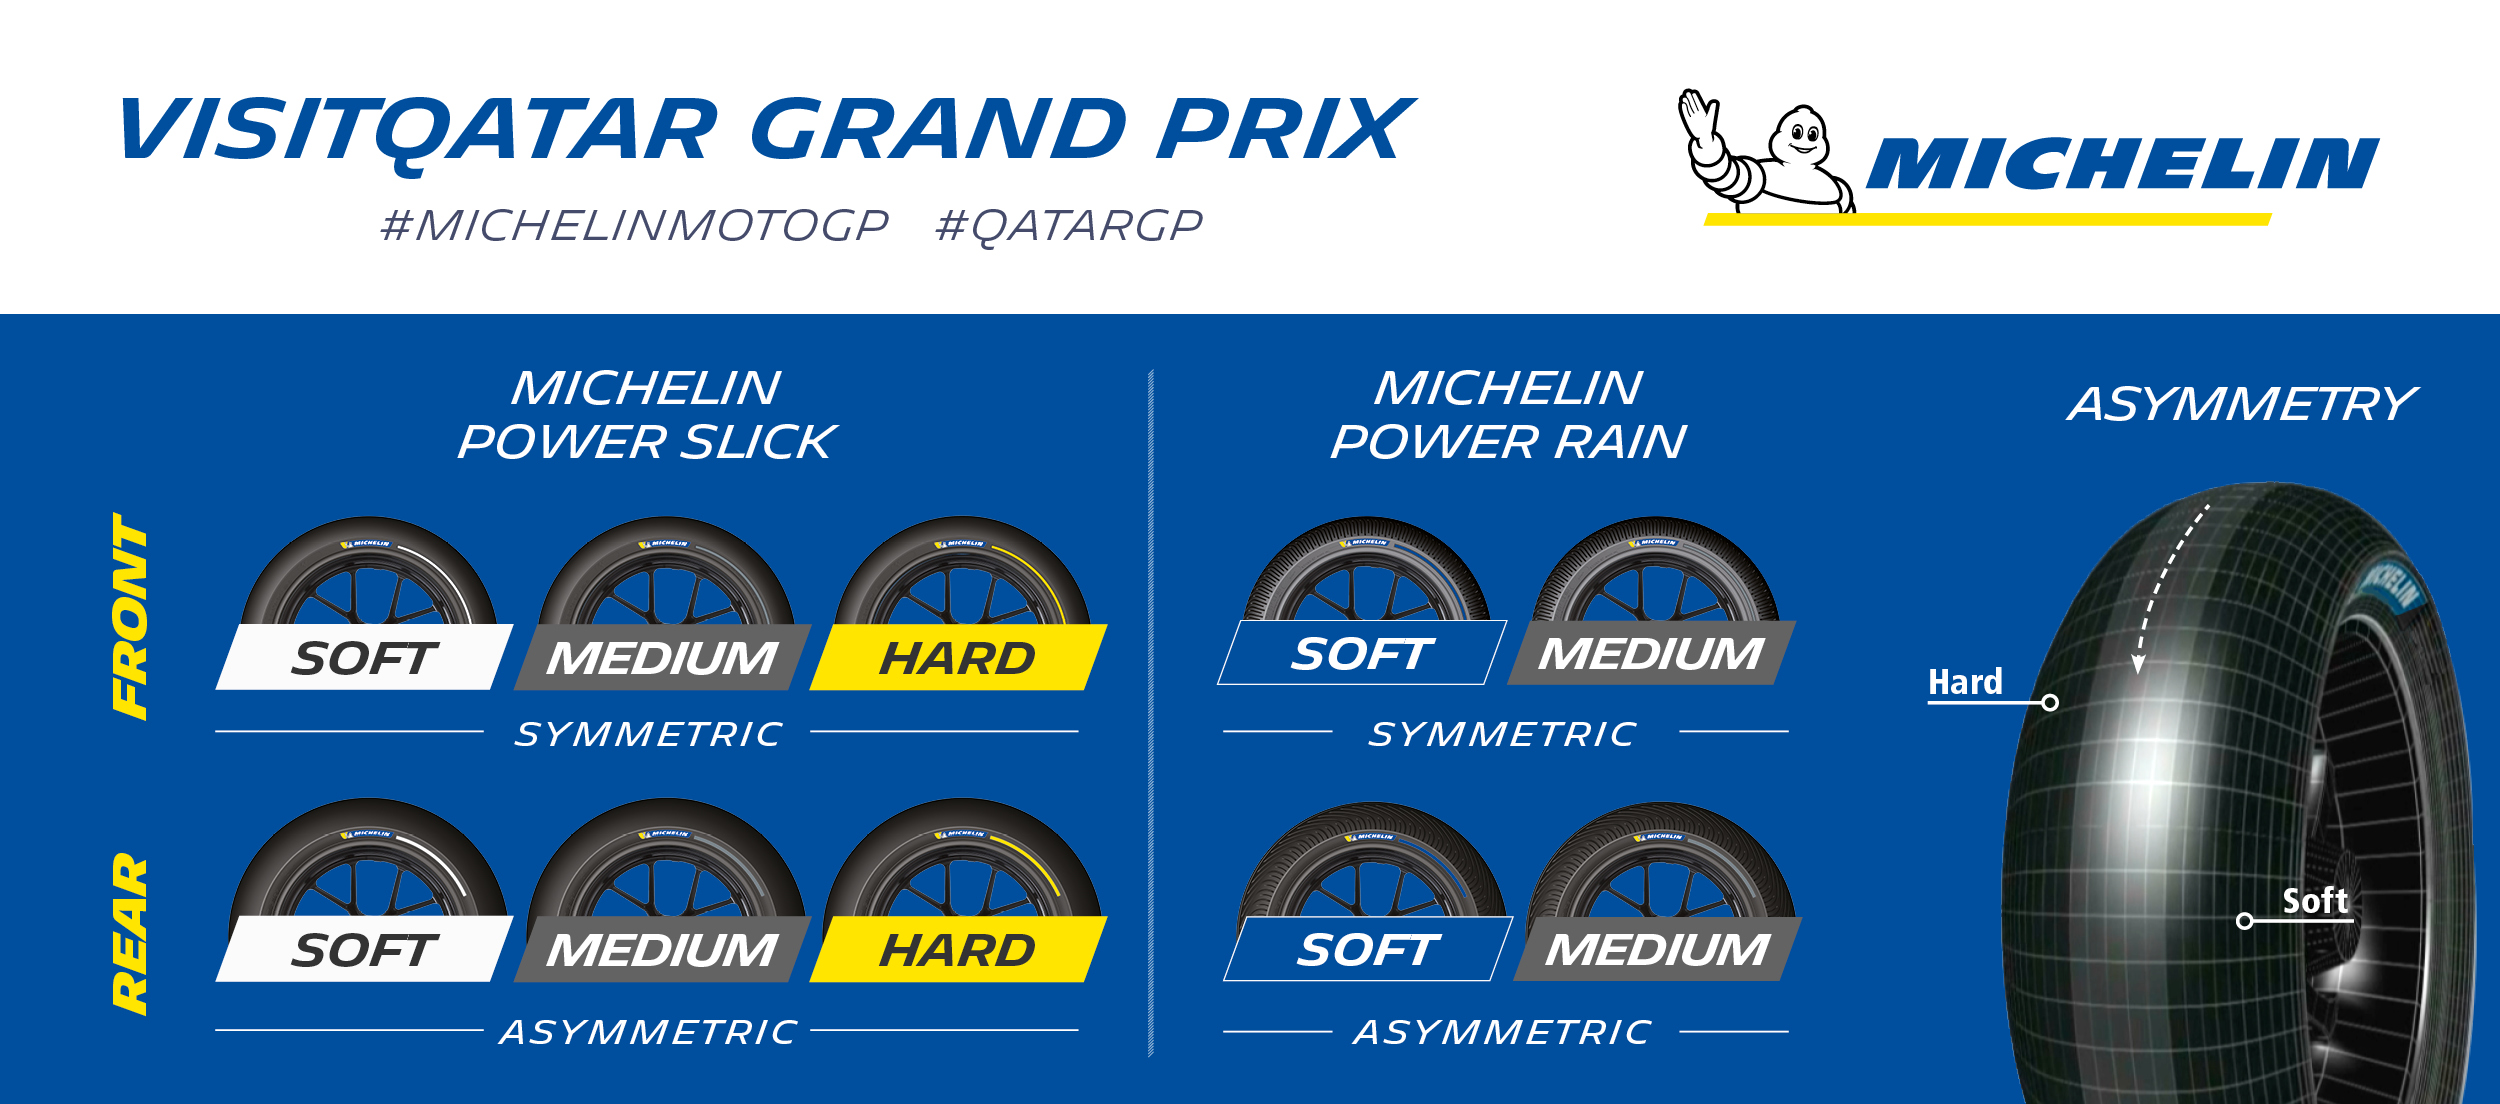 Michelin_QatarGP_TyreAllocation